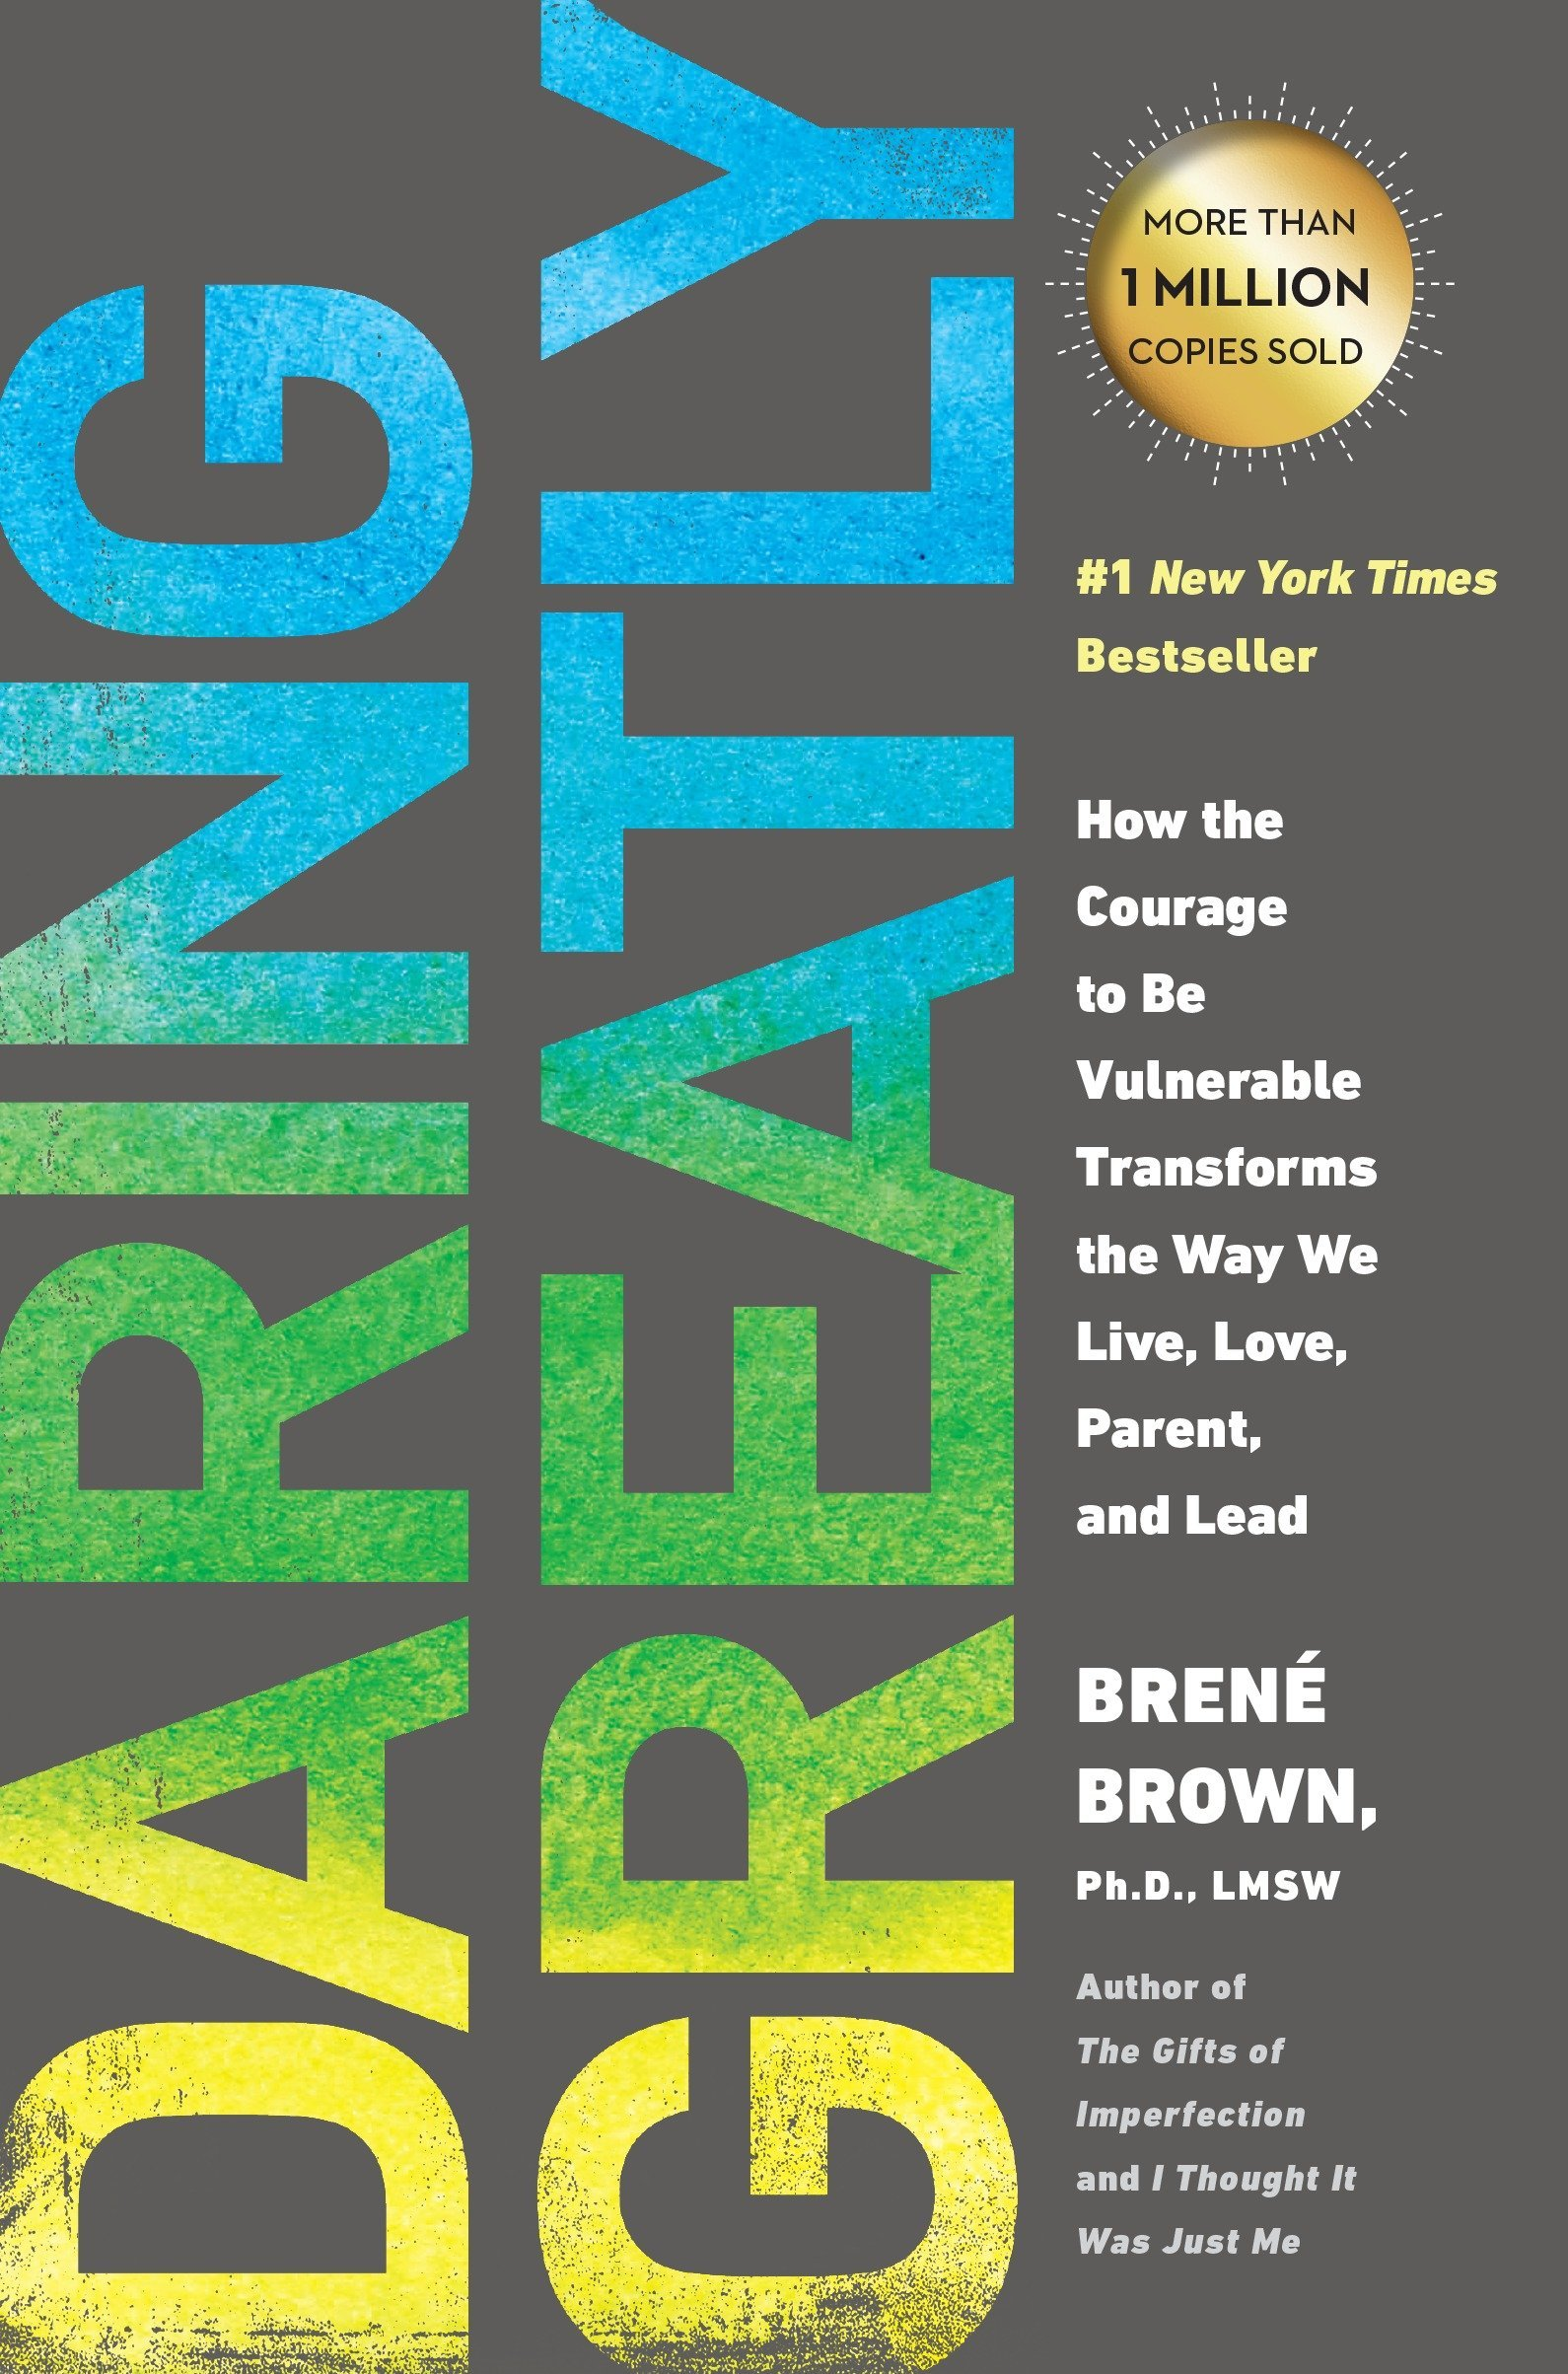 Daring Greatly by Brene Brown - Vulnerability as one of our greatest strengths. Read More